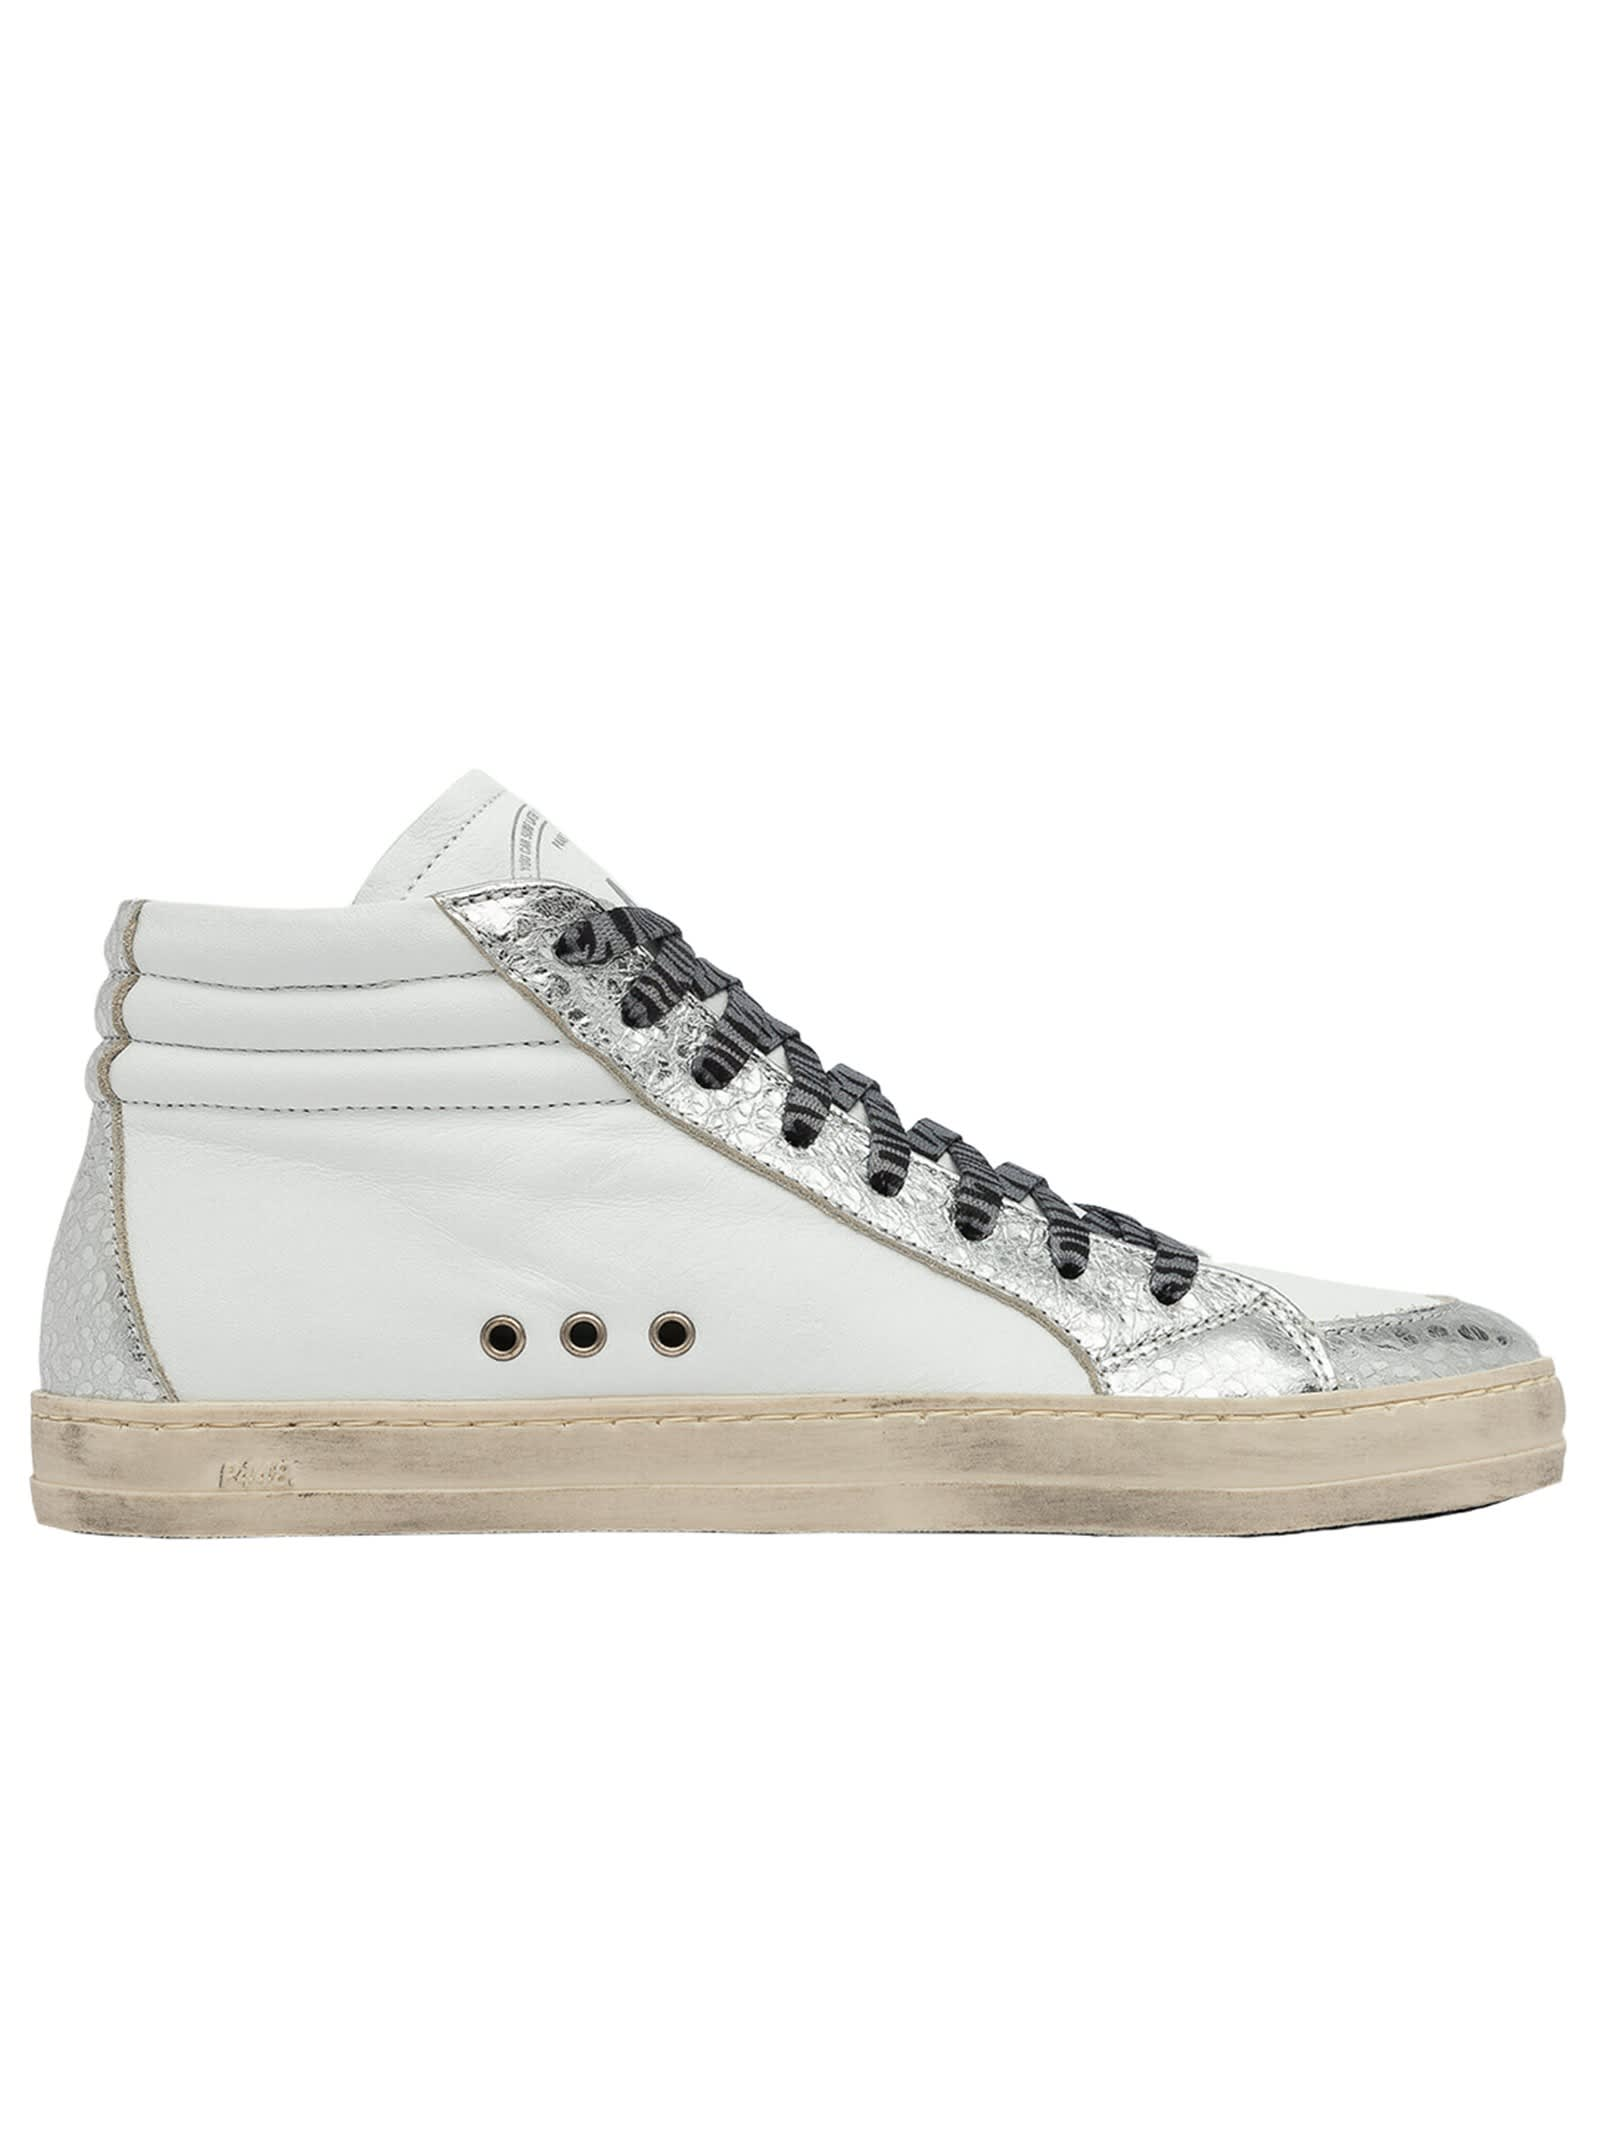 P448 S20SKATE-W WHITE AND SILVER SKATE SNEAKERS